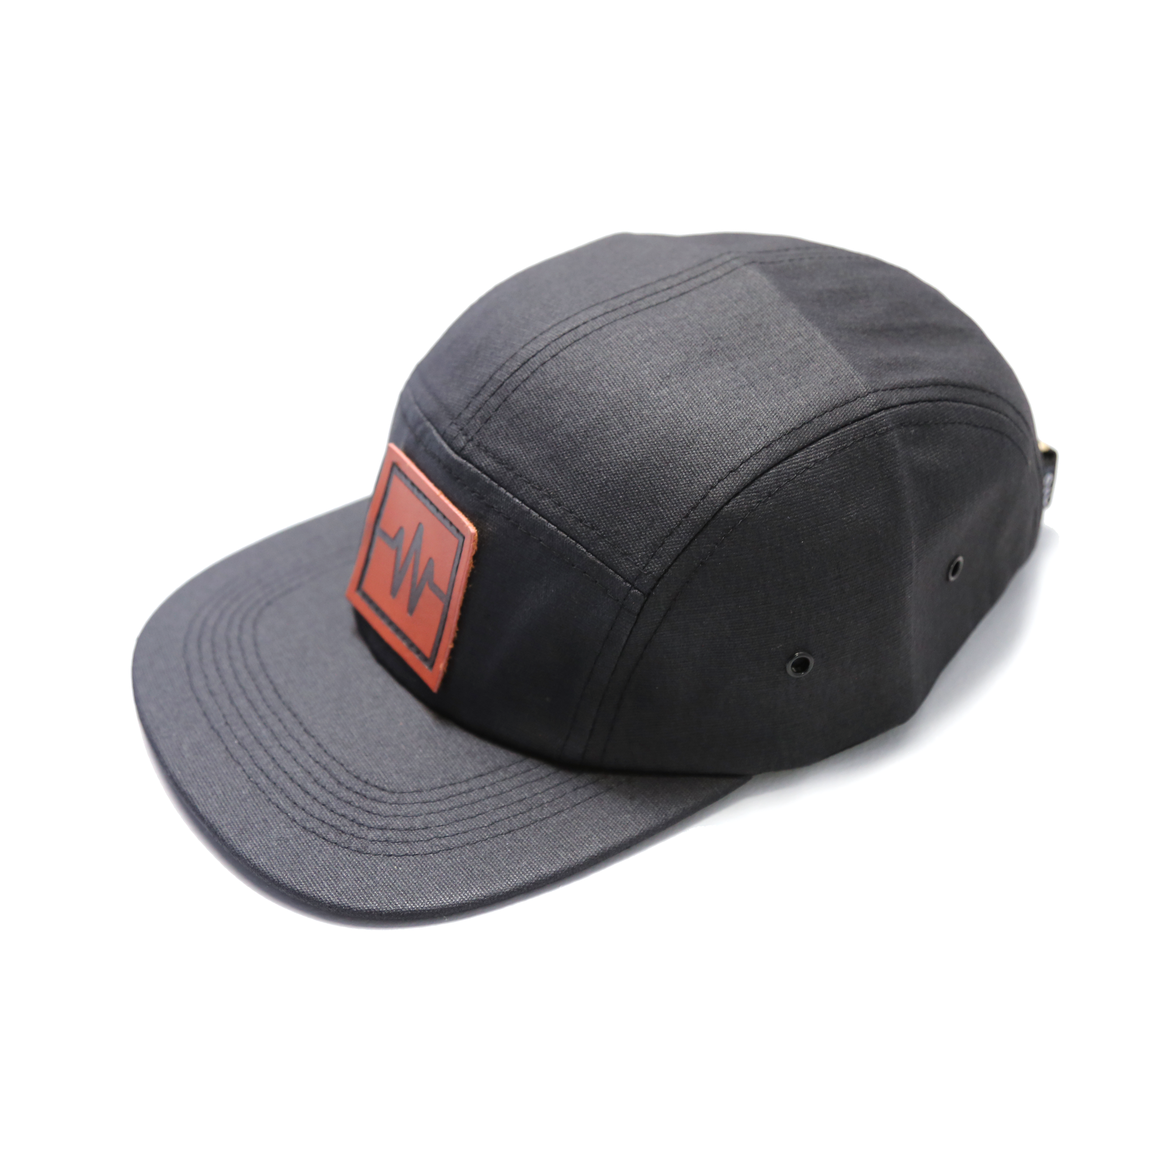 "Six 3 Collective 5 Panel ""Fidelity"" Hat"